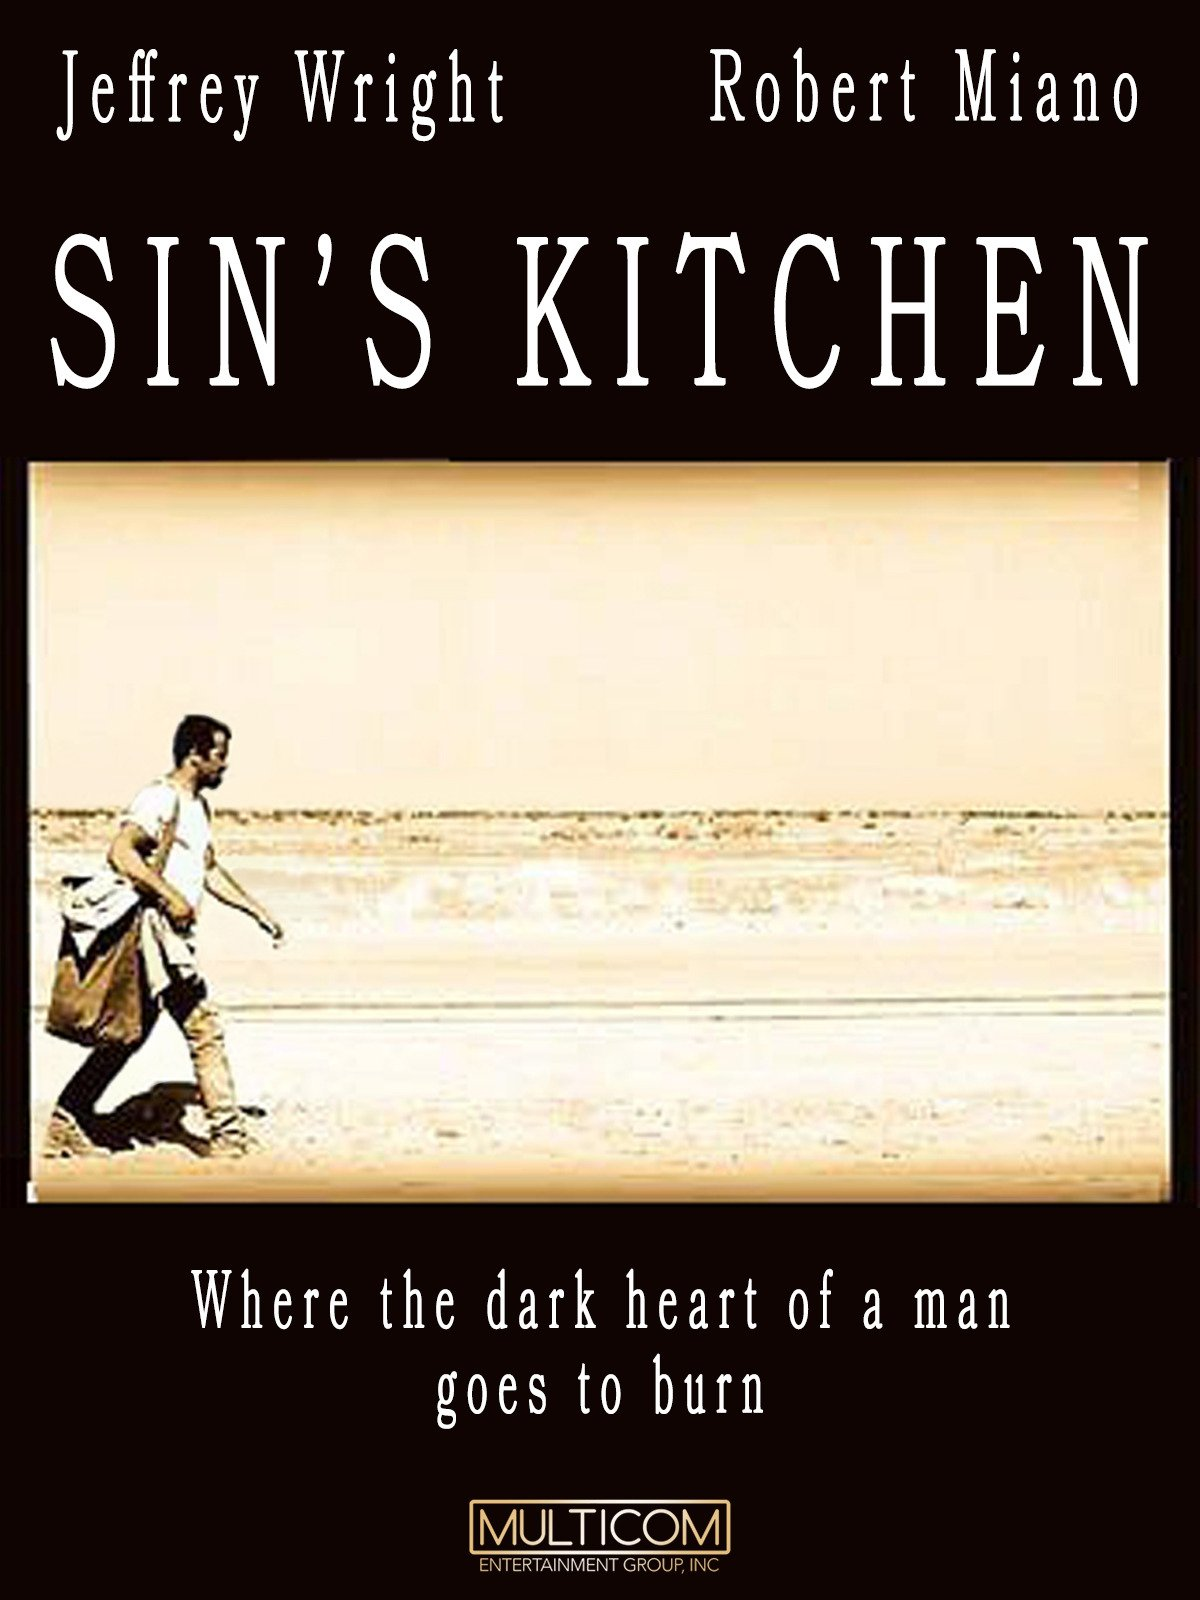 Watch \'Sin\'s Kitchen\' on Amazon Prime Instant Video UK - NewOnAmzPrimeUK